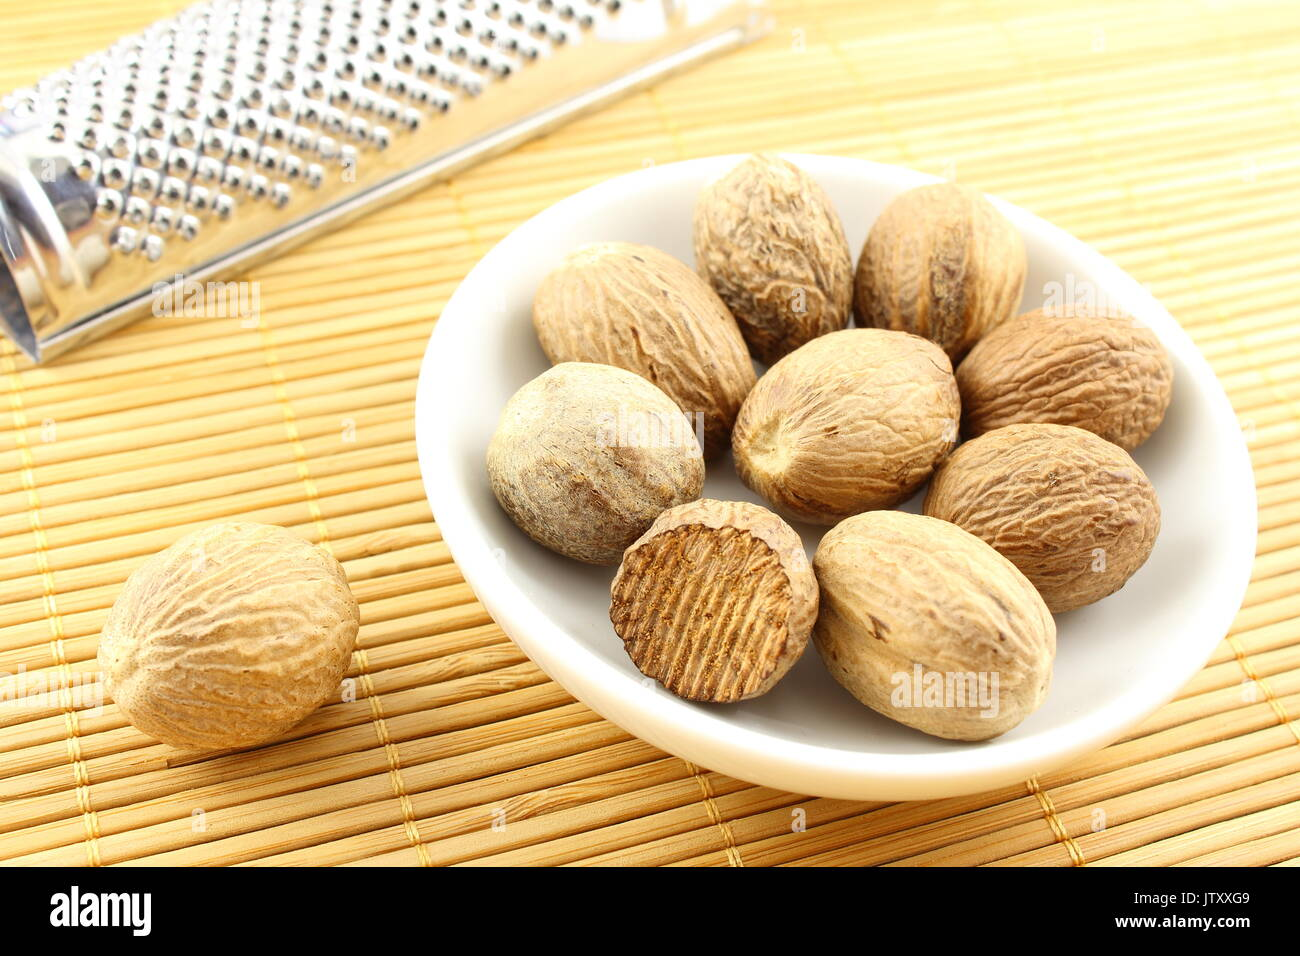 composition of nutmeg seeds in a small white bowl - Stock Image